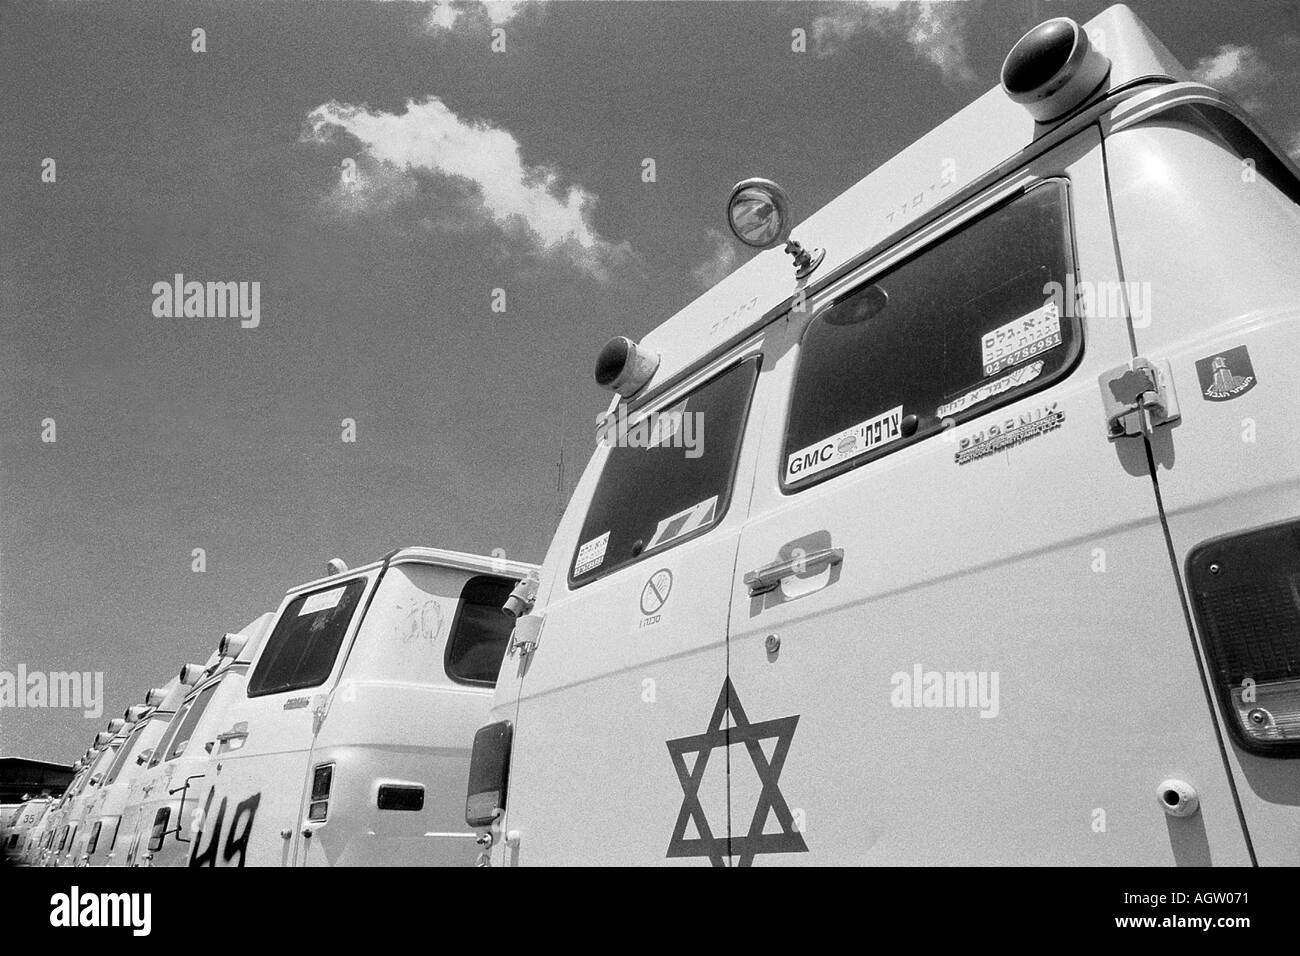 Mobile care vehicles parked in 'Magen David Adom' Israel's national emergency medical service station - Stock Image